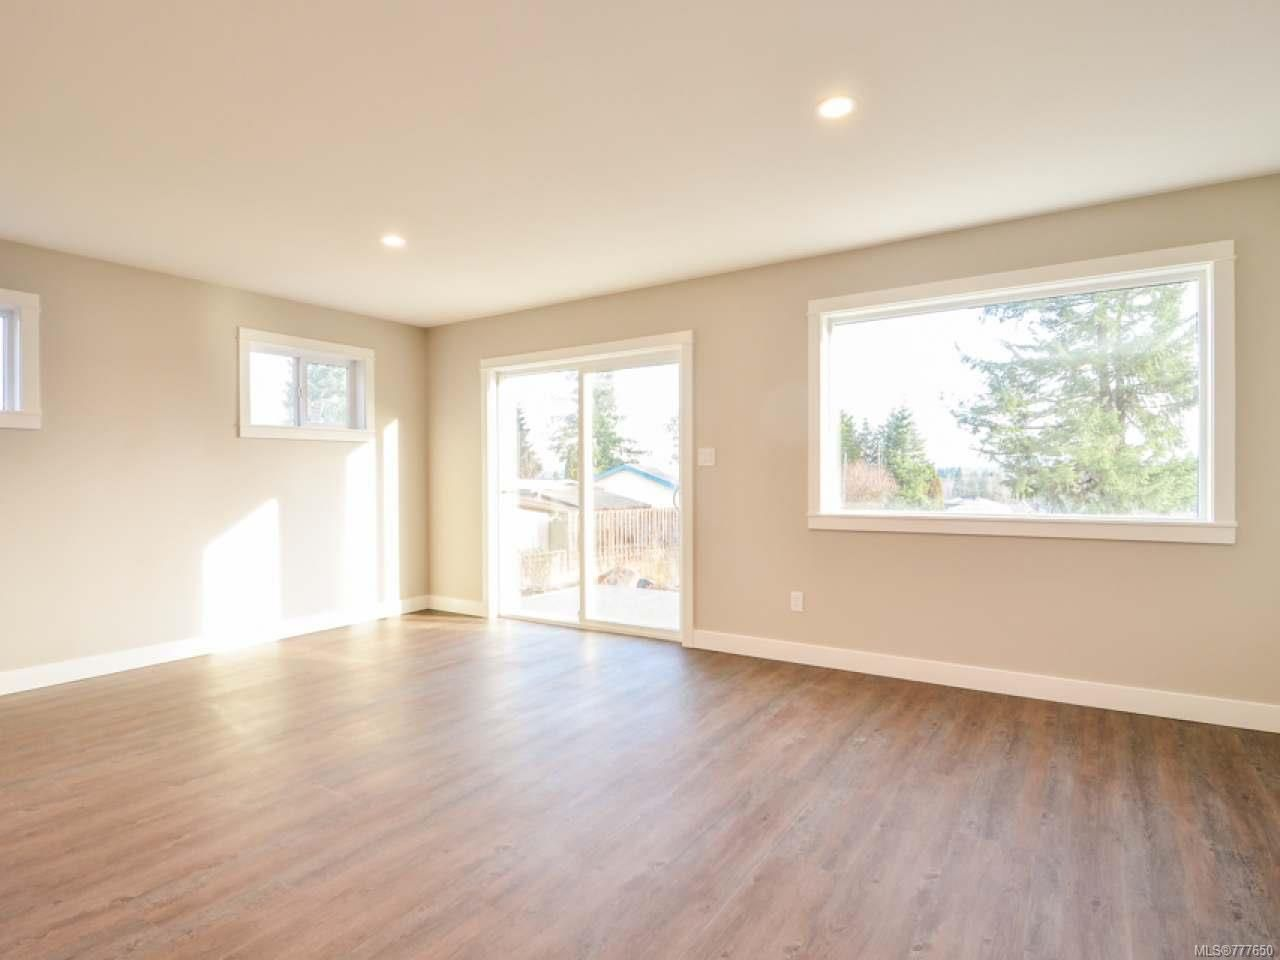 Photo 9: Photos: 2 535 Petersen Rd in CAMPBELL RIVER: CR Campbell River West Half Duplex for sale (Campbell River)  : MLS®# 777650